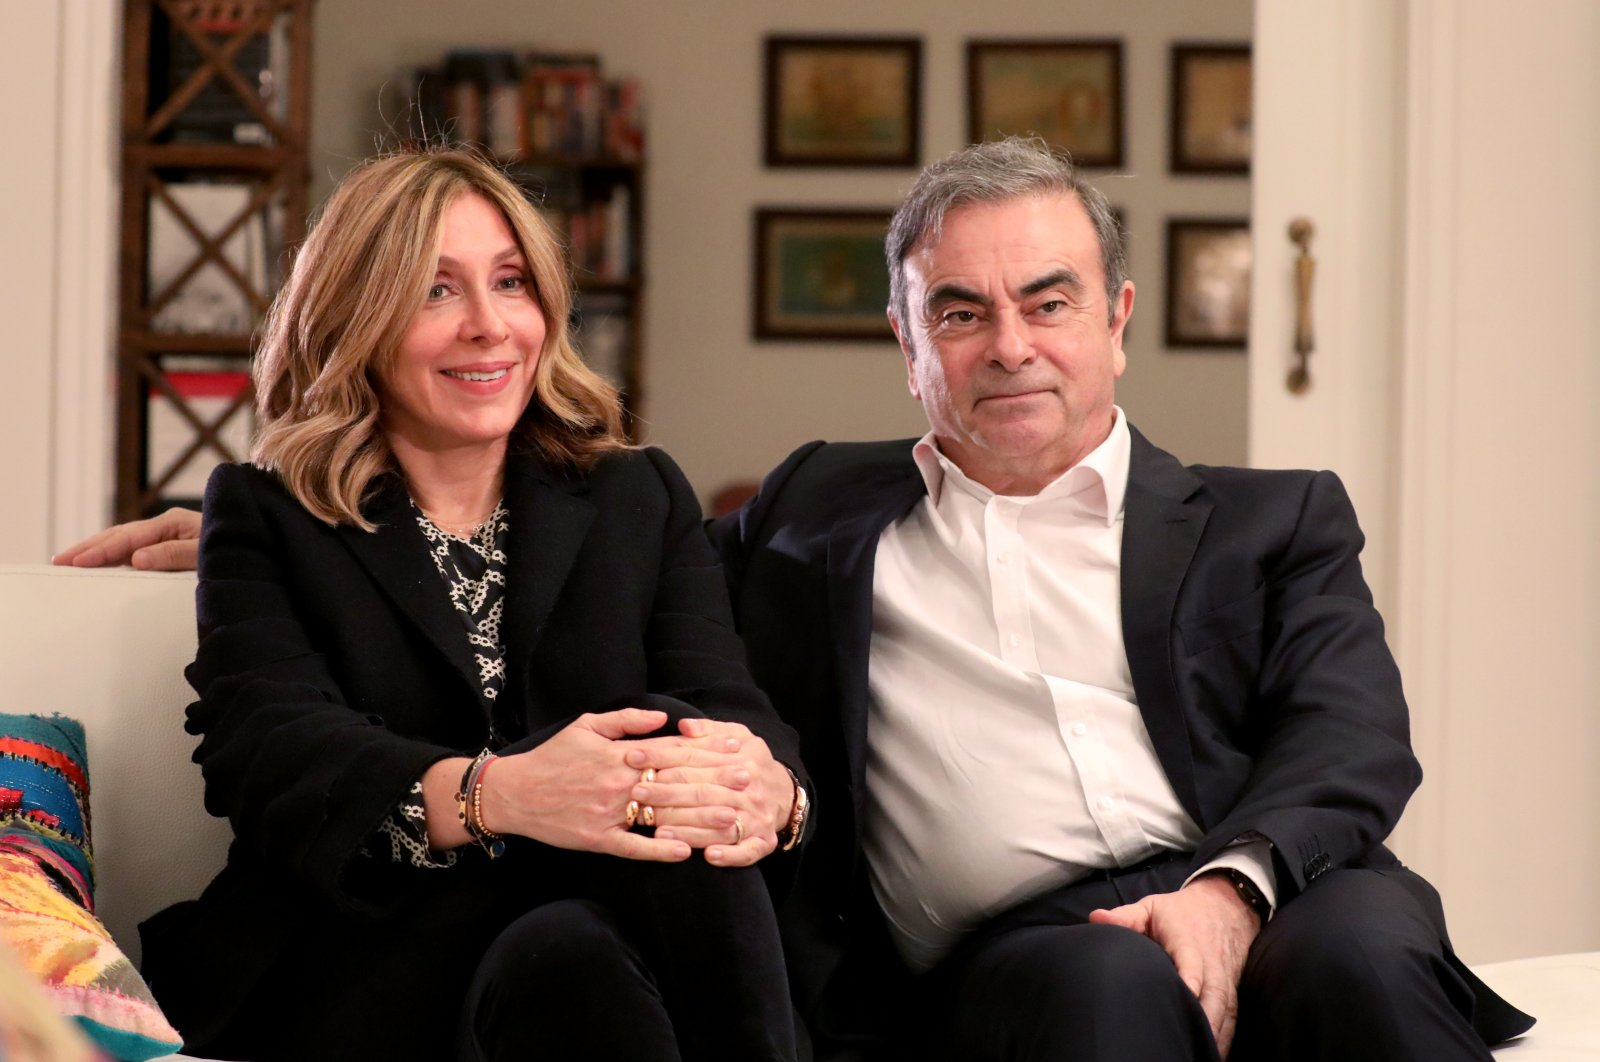 Former Nissan chairman Carlos Ghosn and his wife Carole Ghosn talk during an interview with Reuters in Beirut, Lebanon, Jan. 14, 2020. (Reuters Photo)